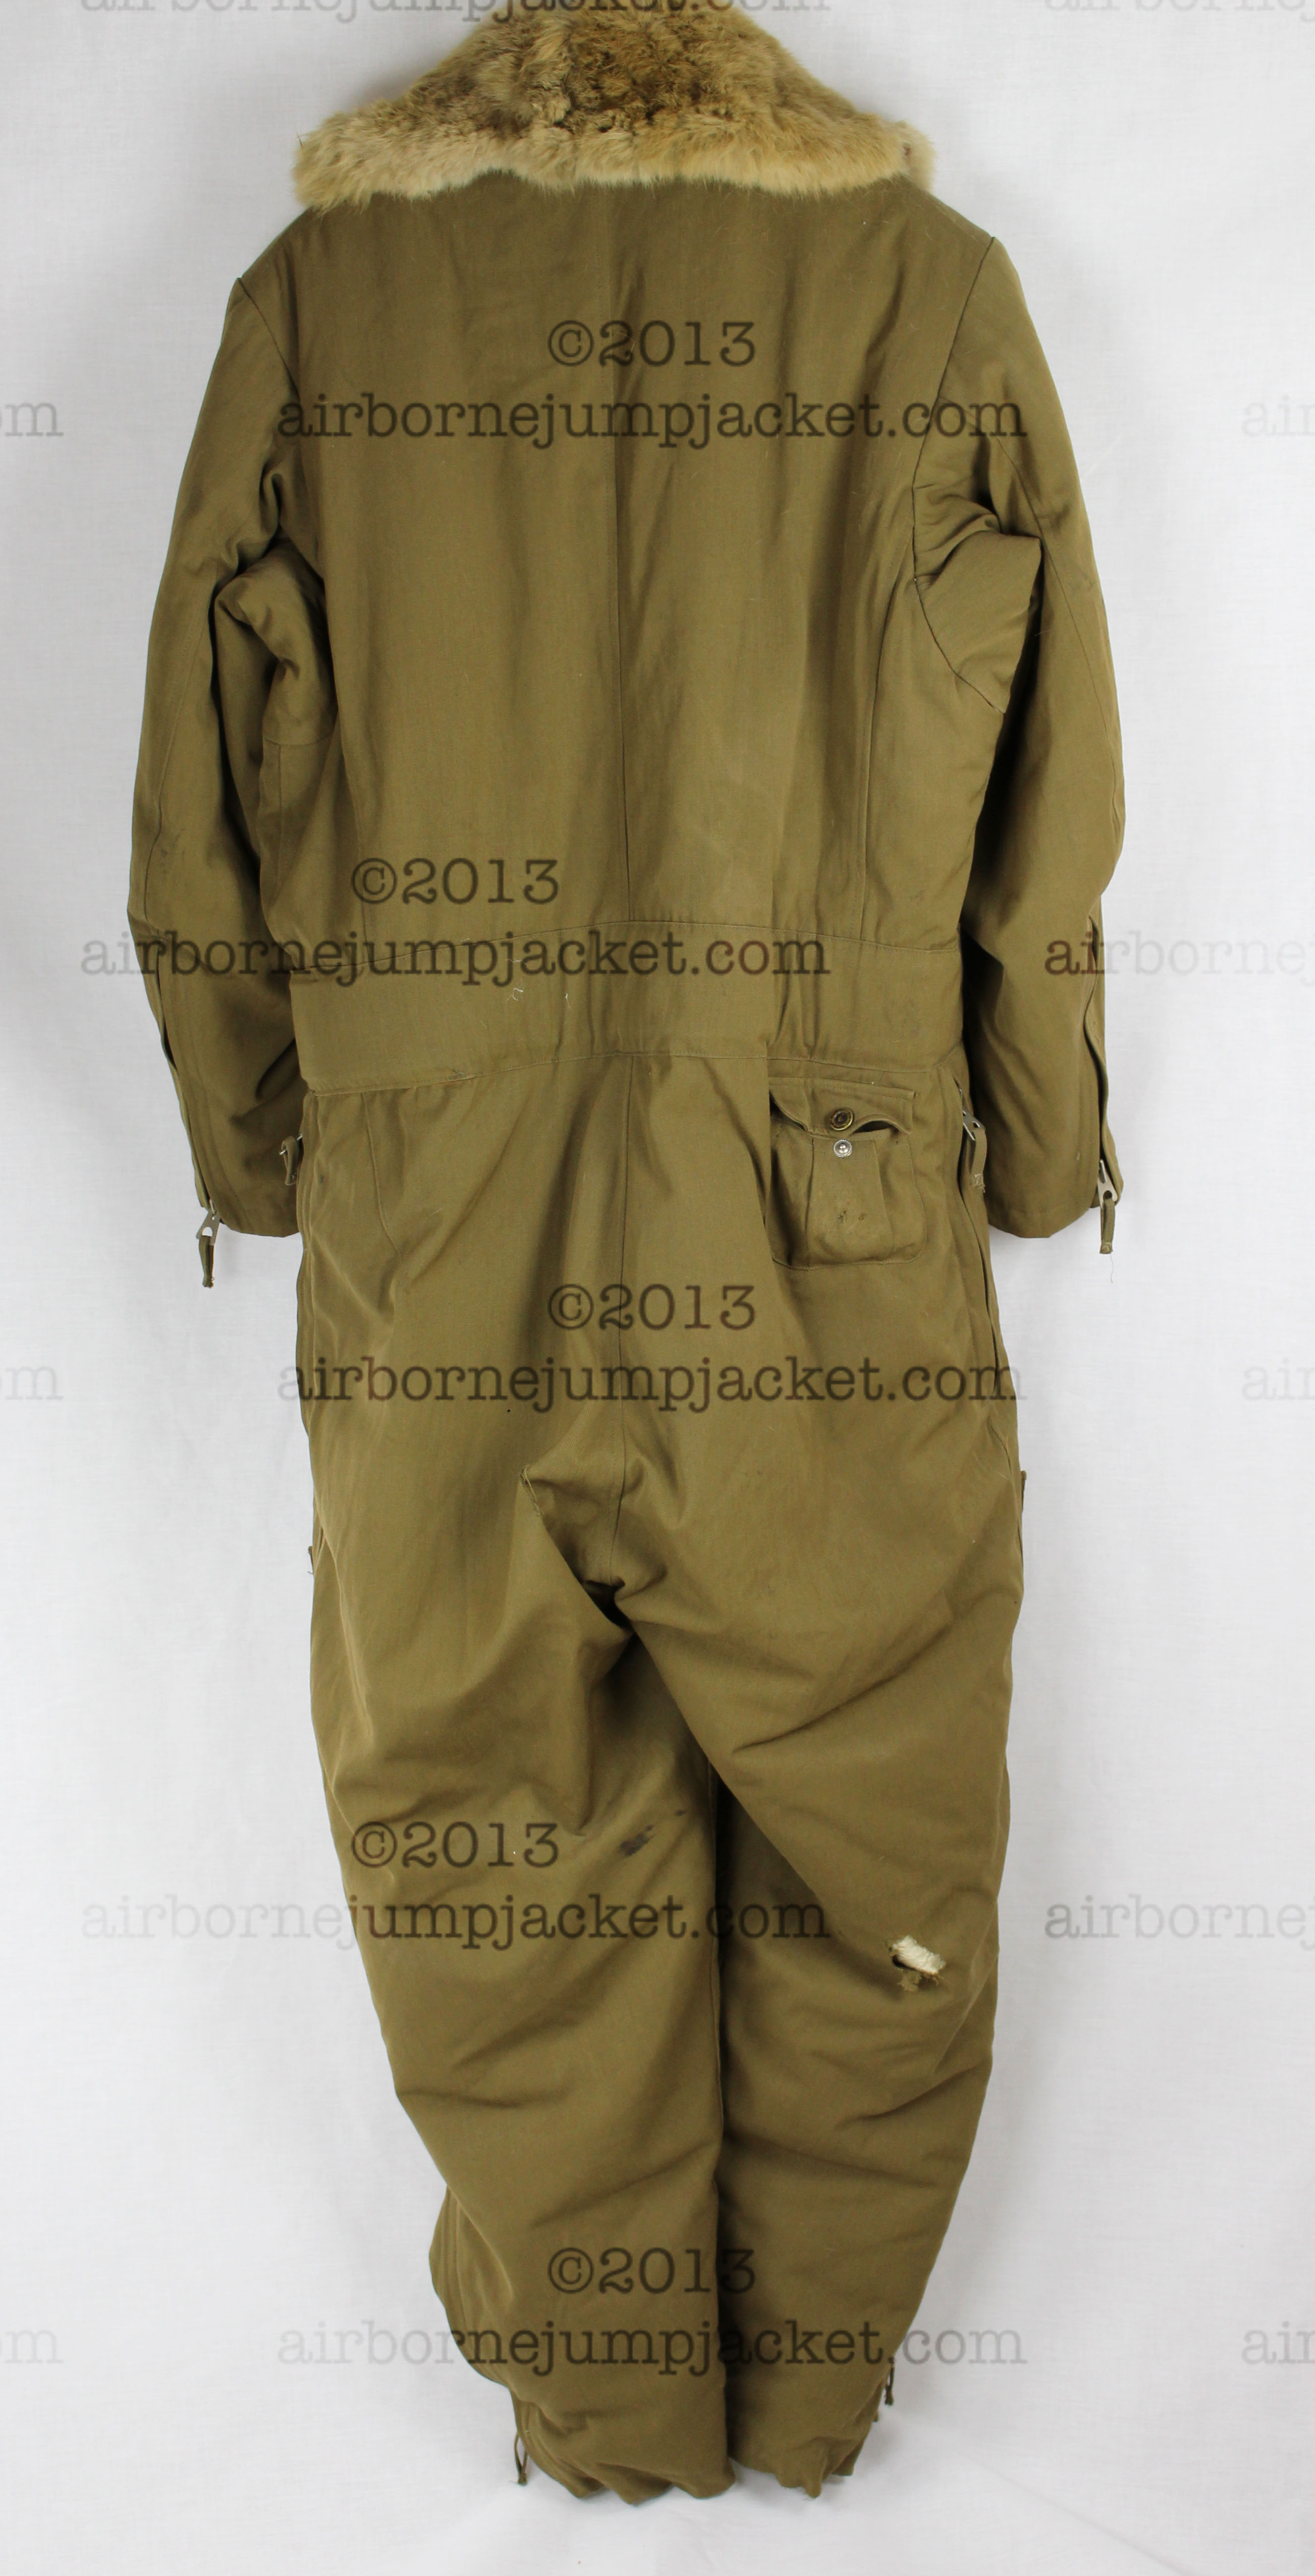 a53917f4b37 World War Two Japanese Army Pilot Flight Suit With Flight Gloves and ...